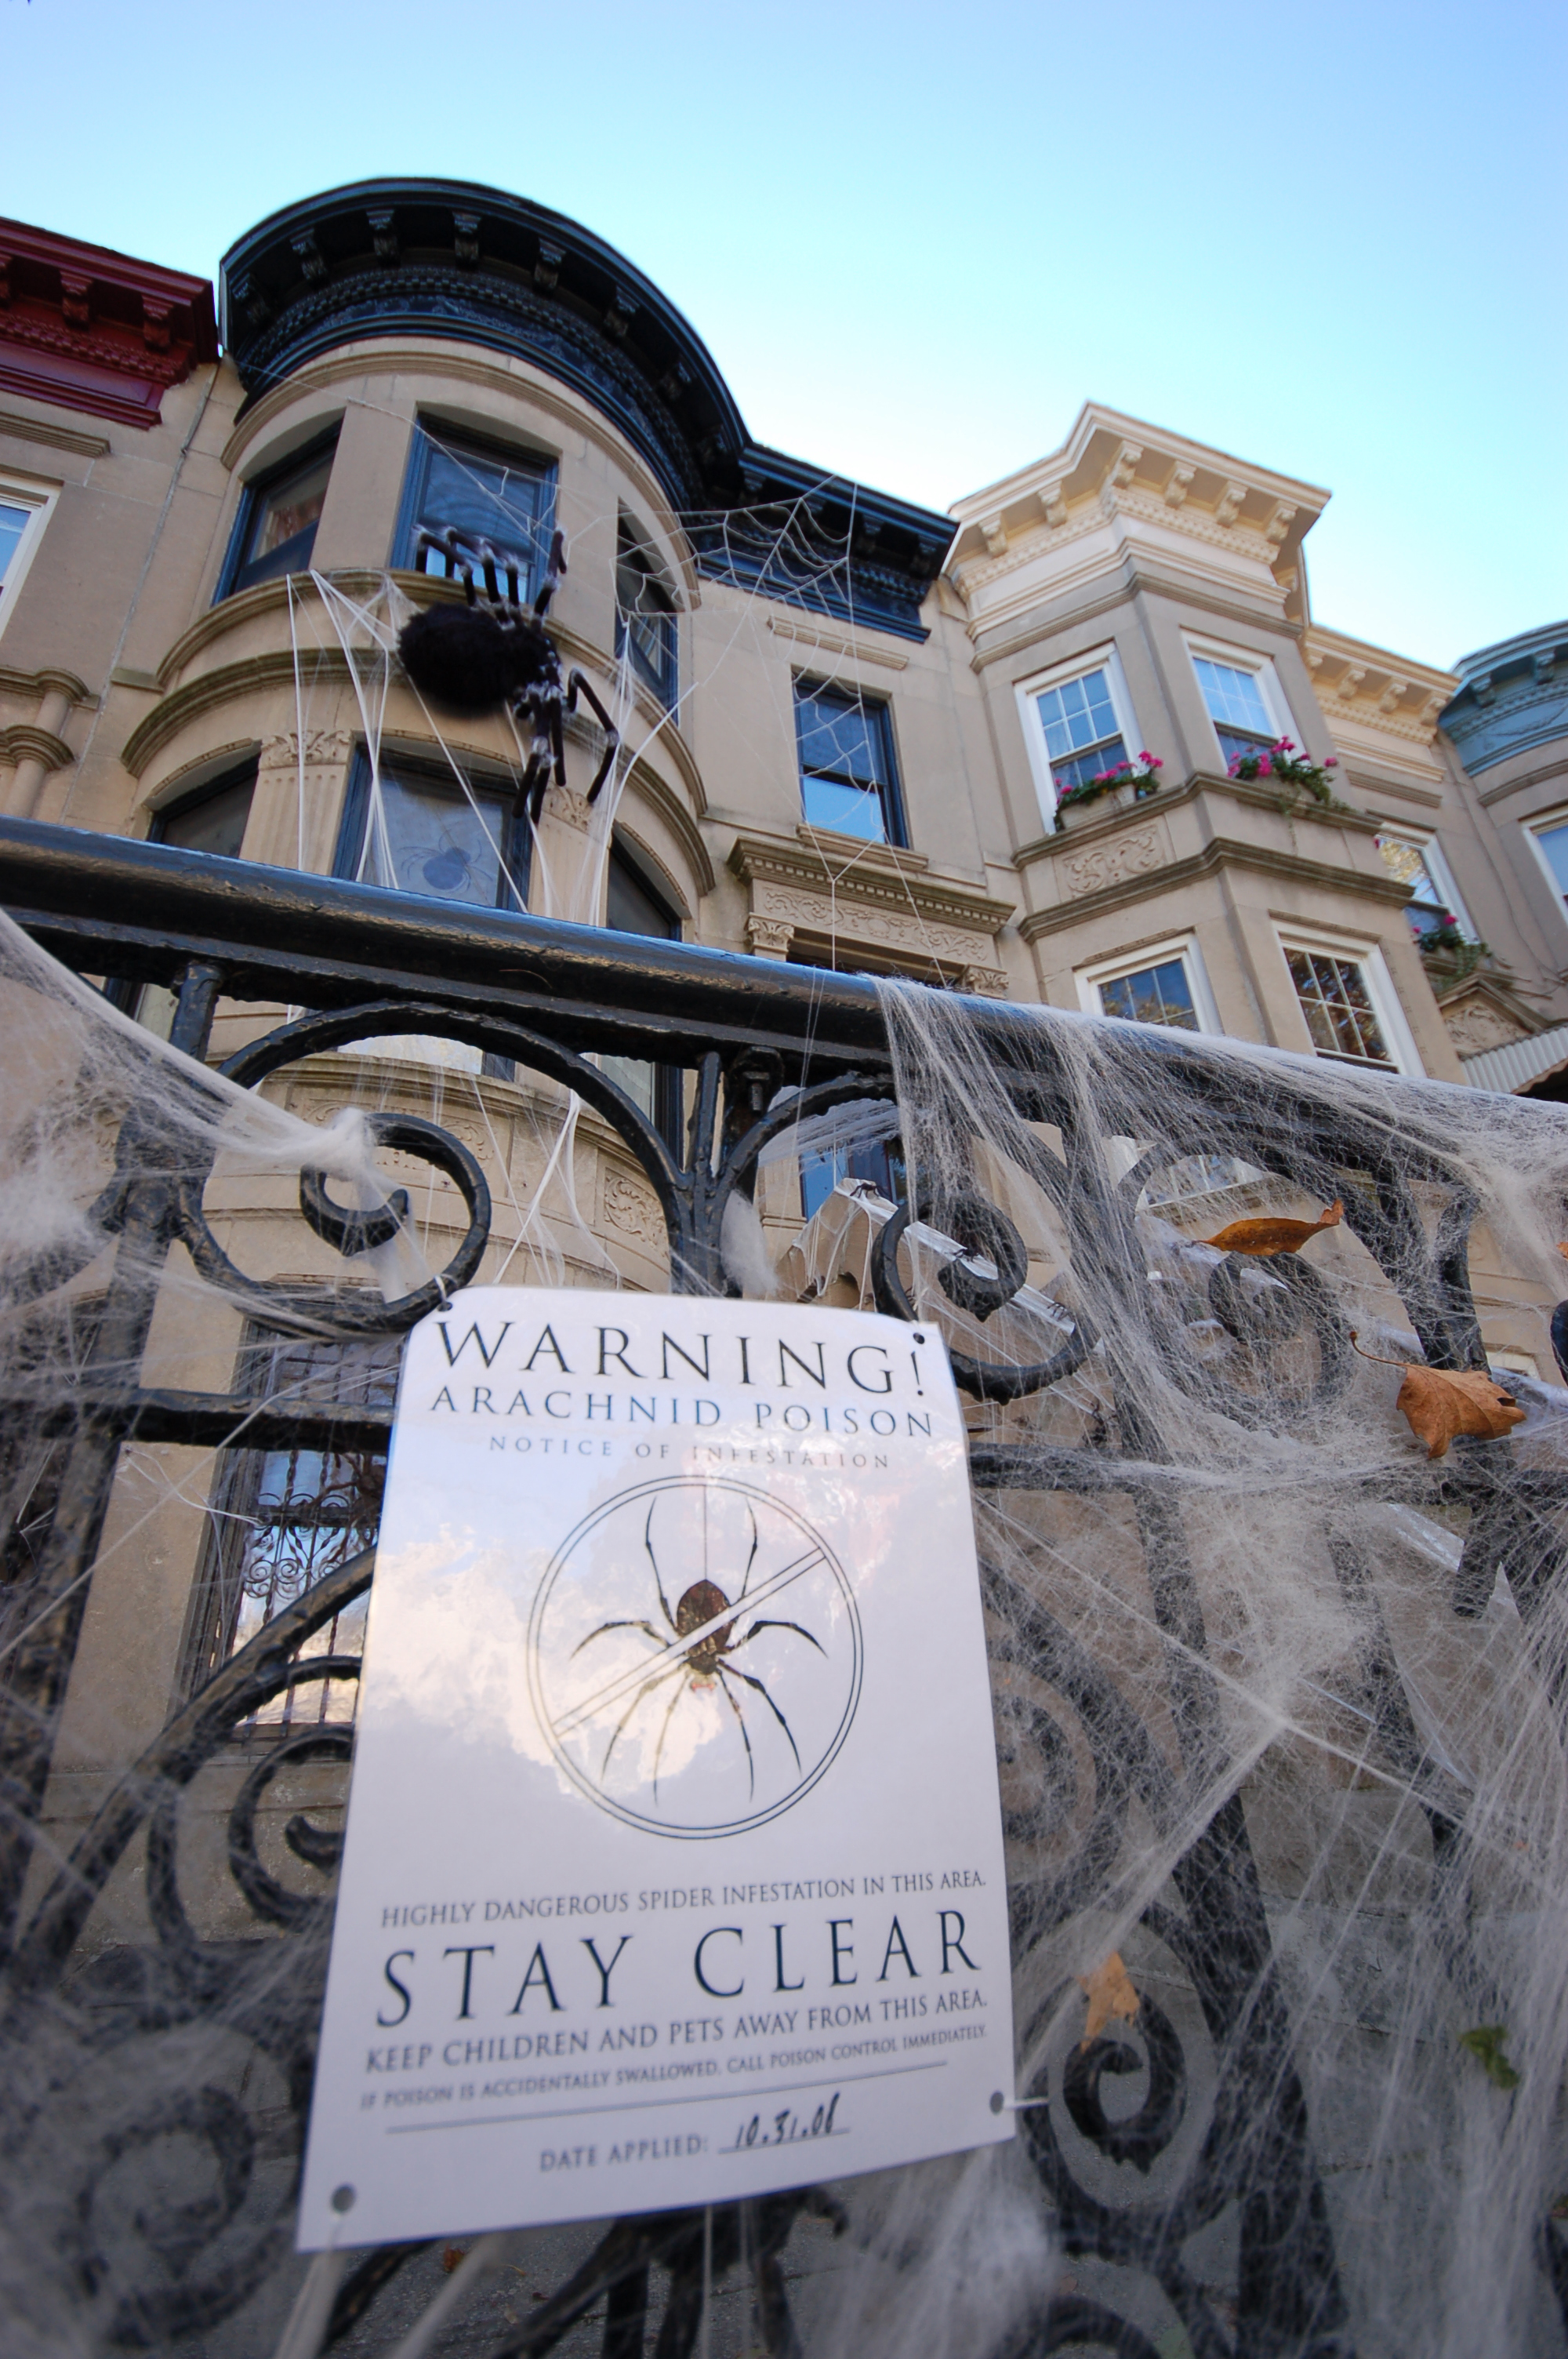 Spider Infestation Halloween www.brooklynlimestone.com